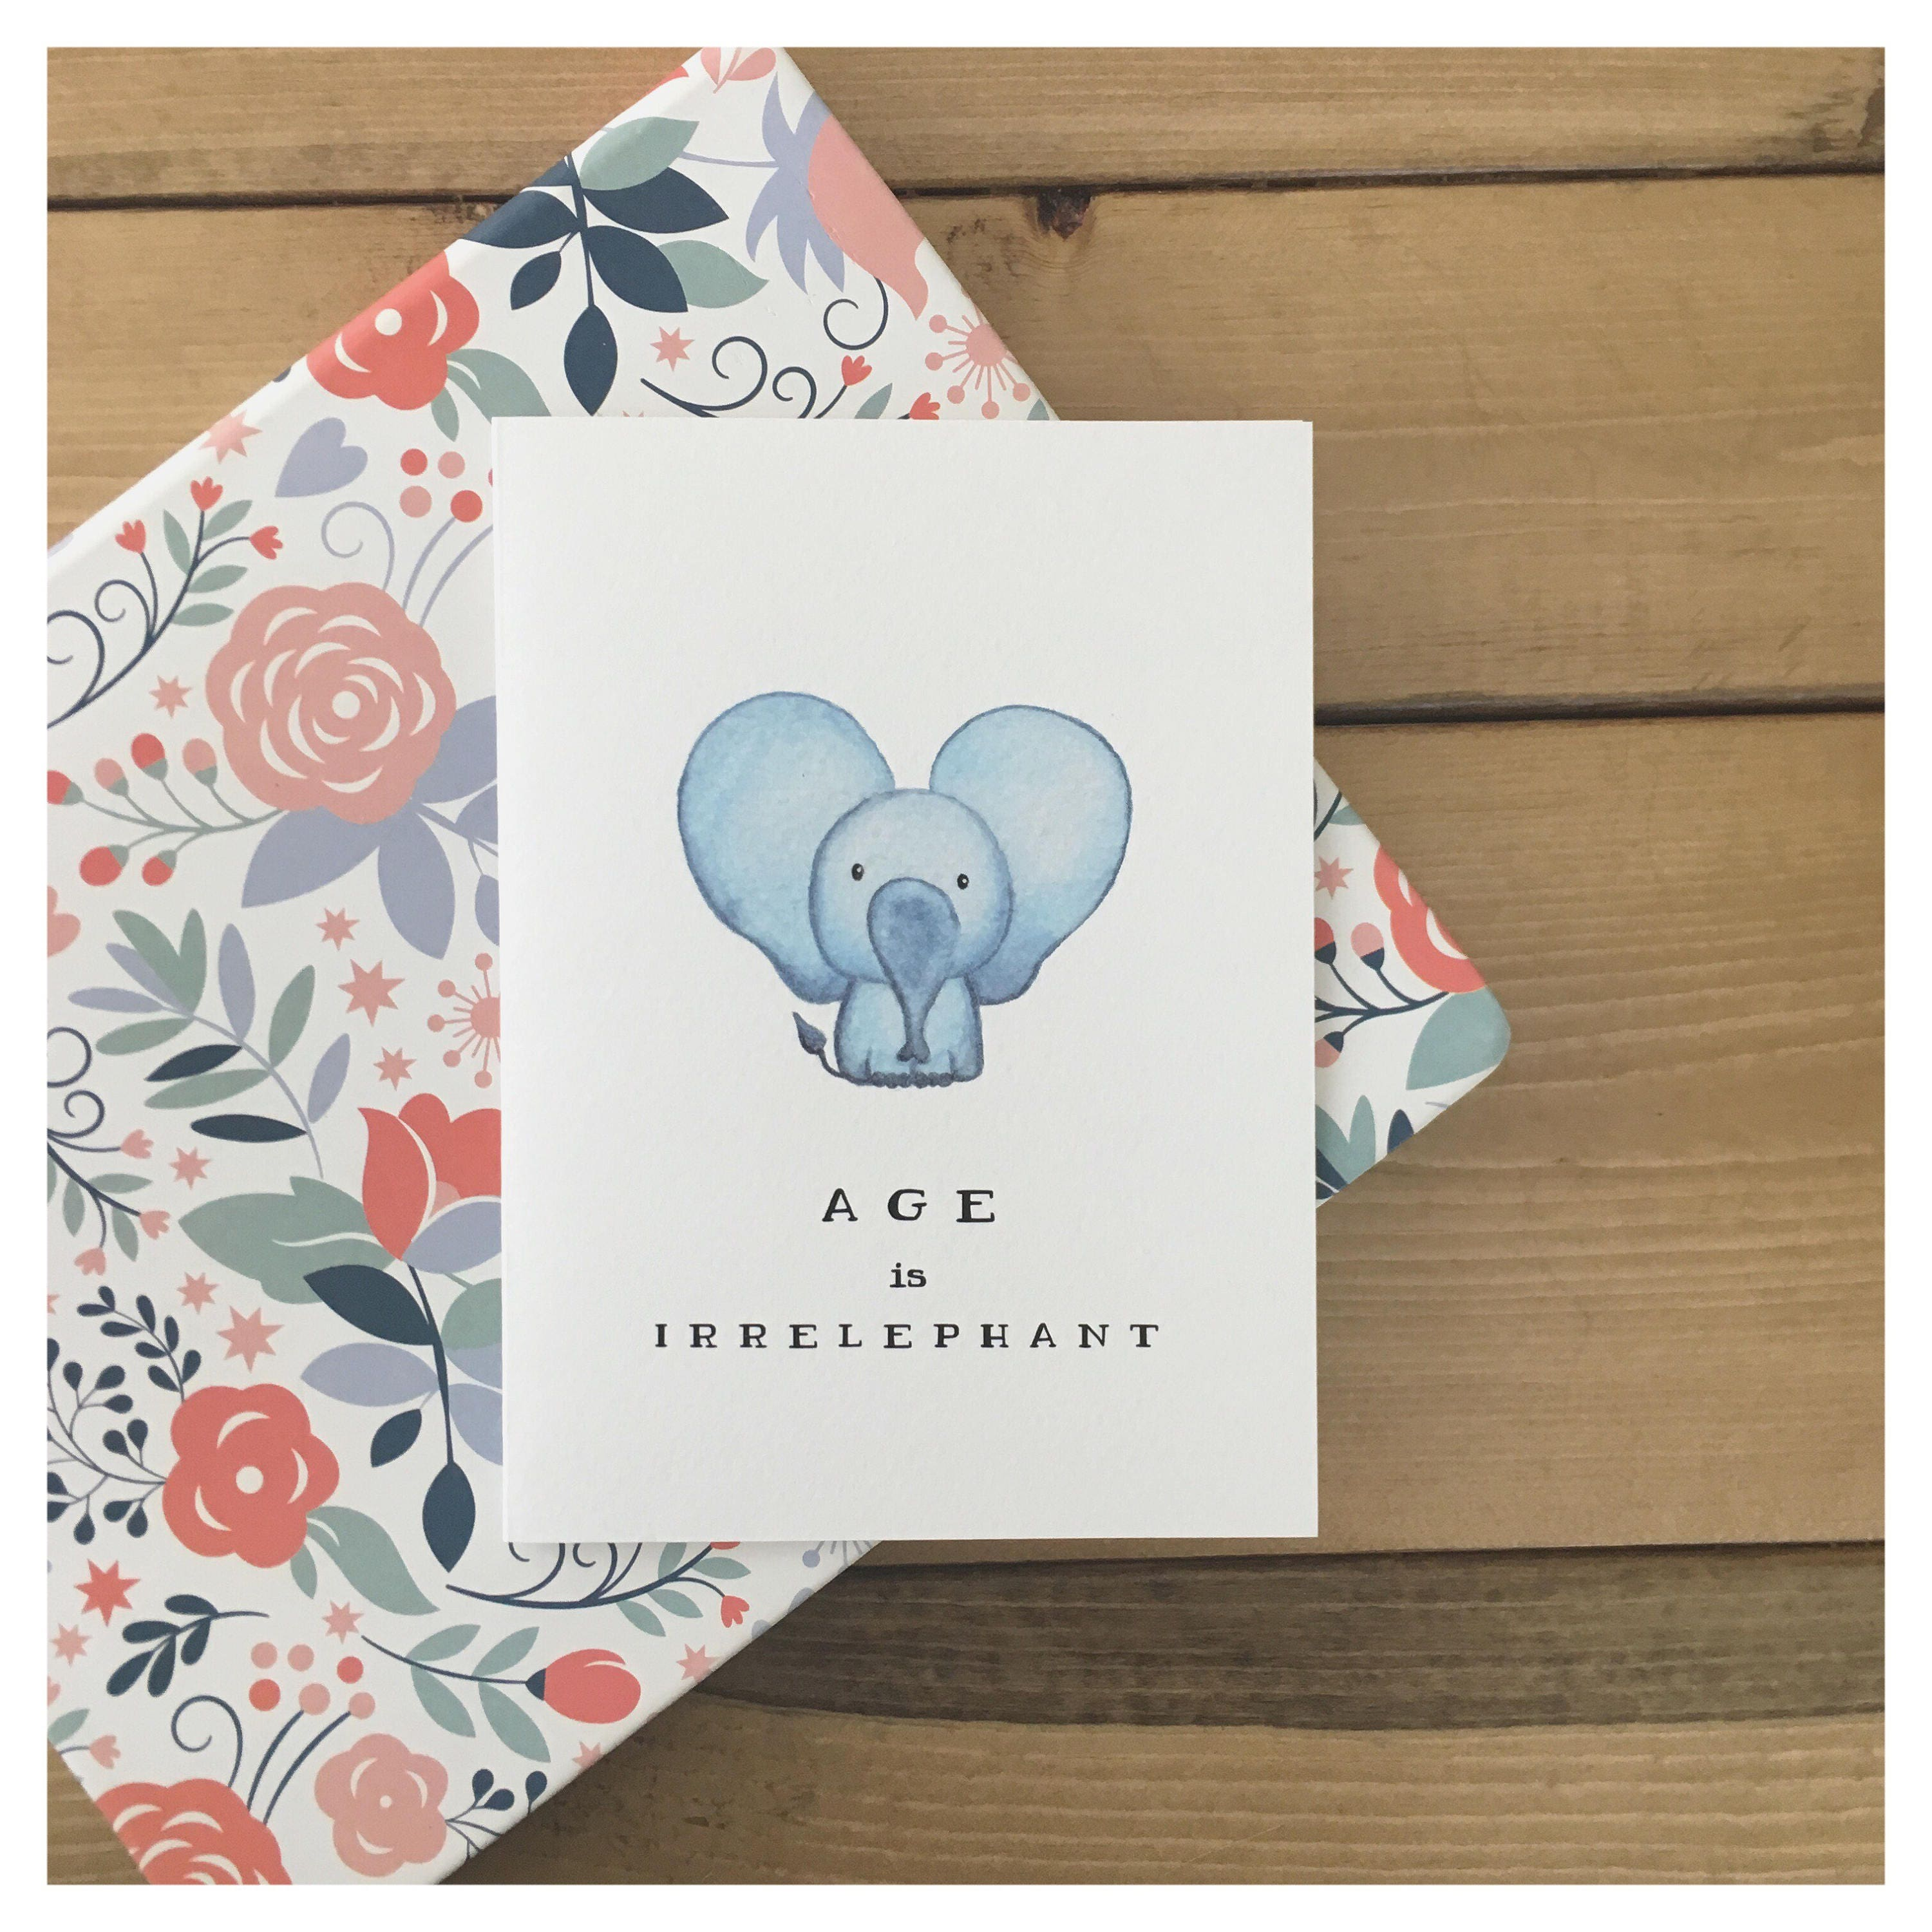 Elephant card funny birthday card birthday card cute birthday elephant card funny birthday card birthday card cute birthday card greeting card cute card cute elephant girlfriend birthday gift m4hsunfo